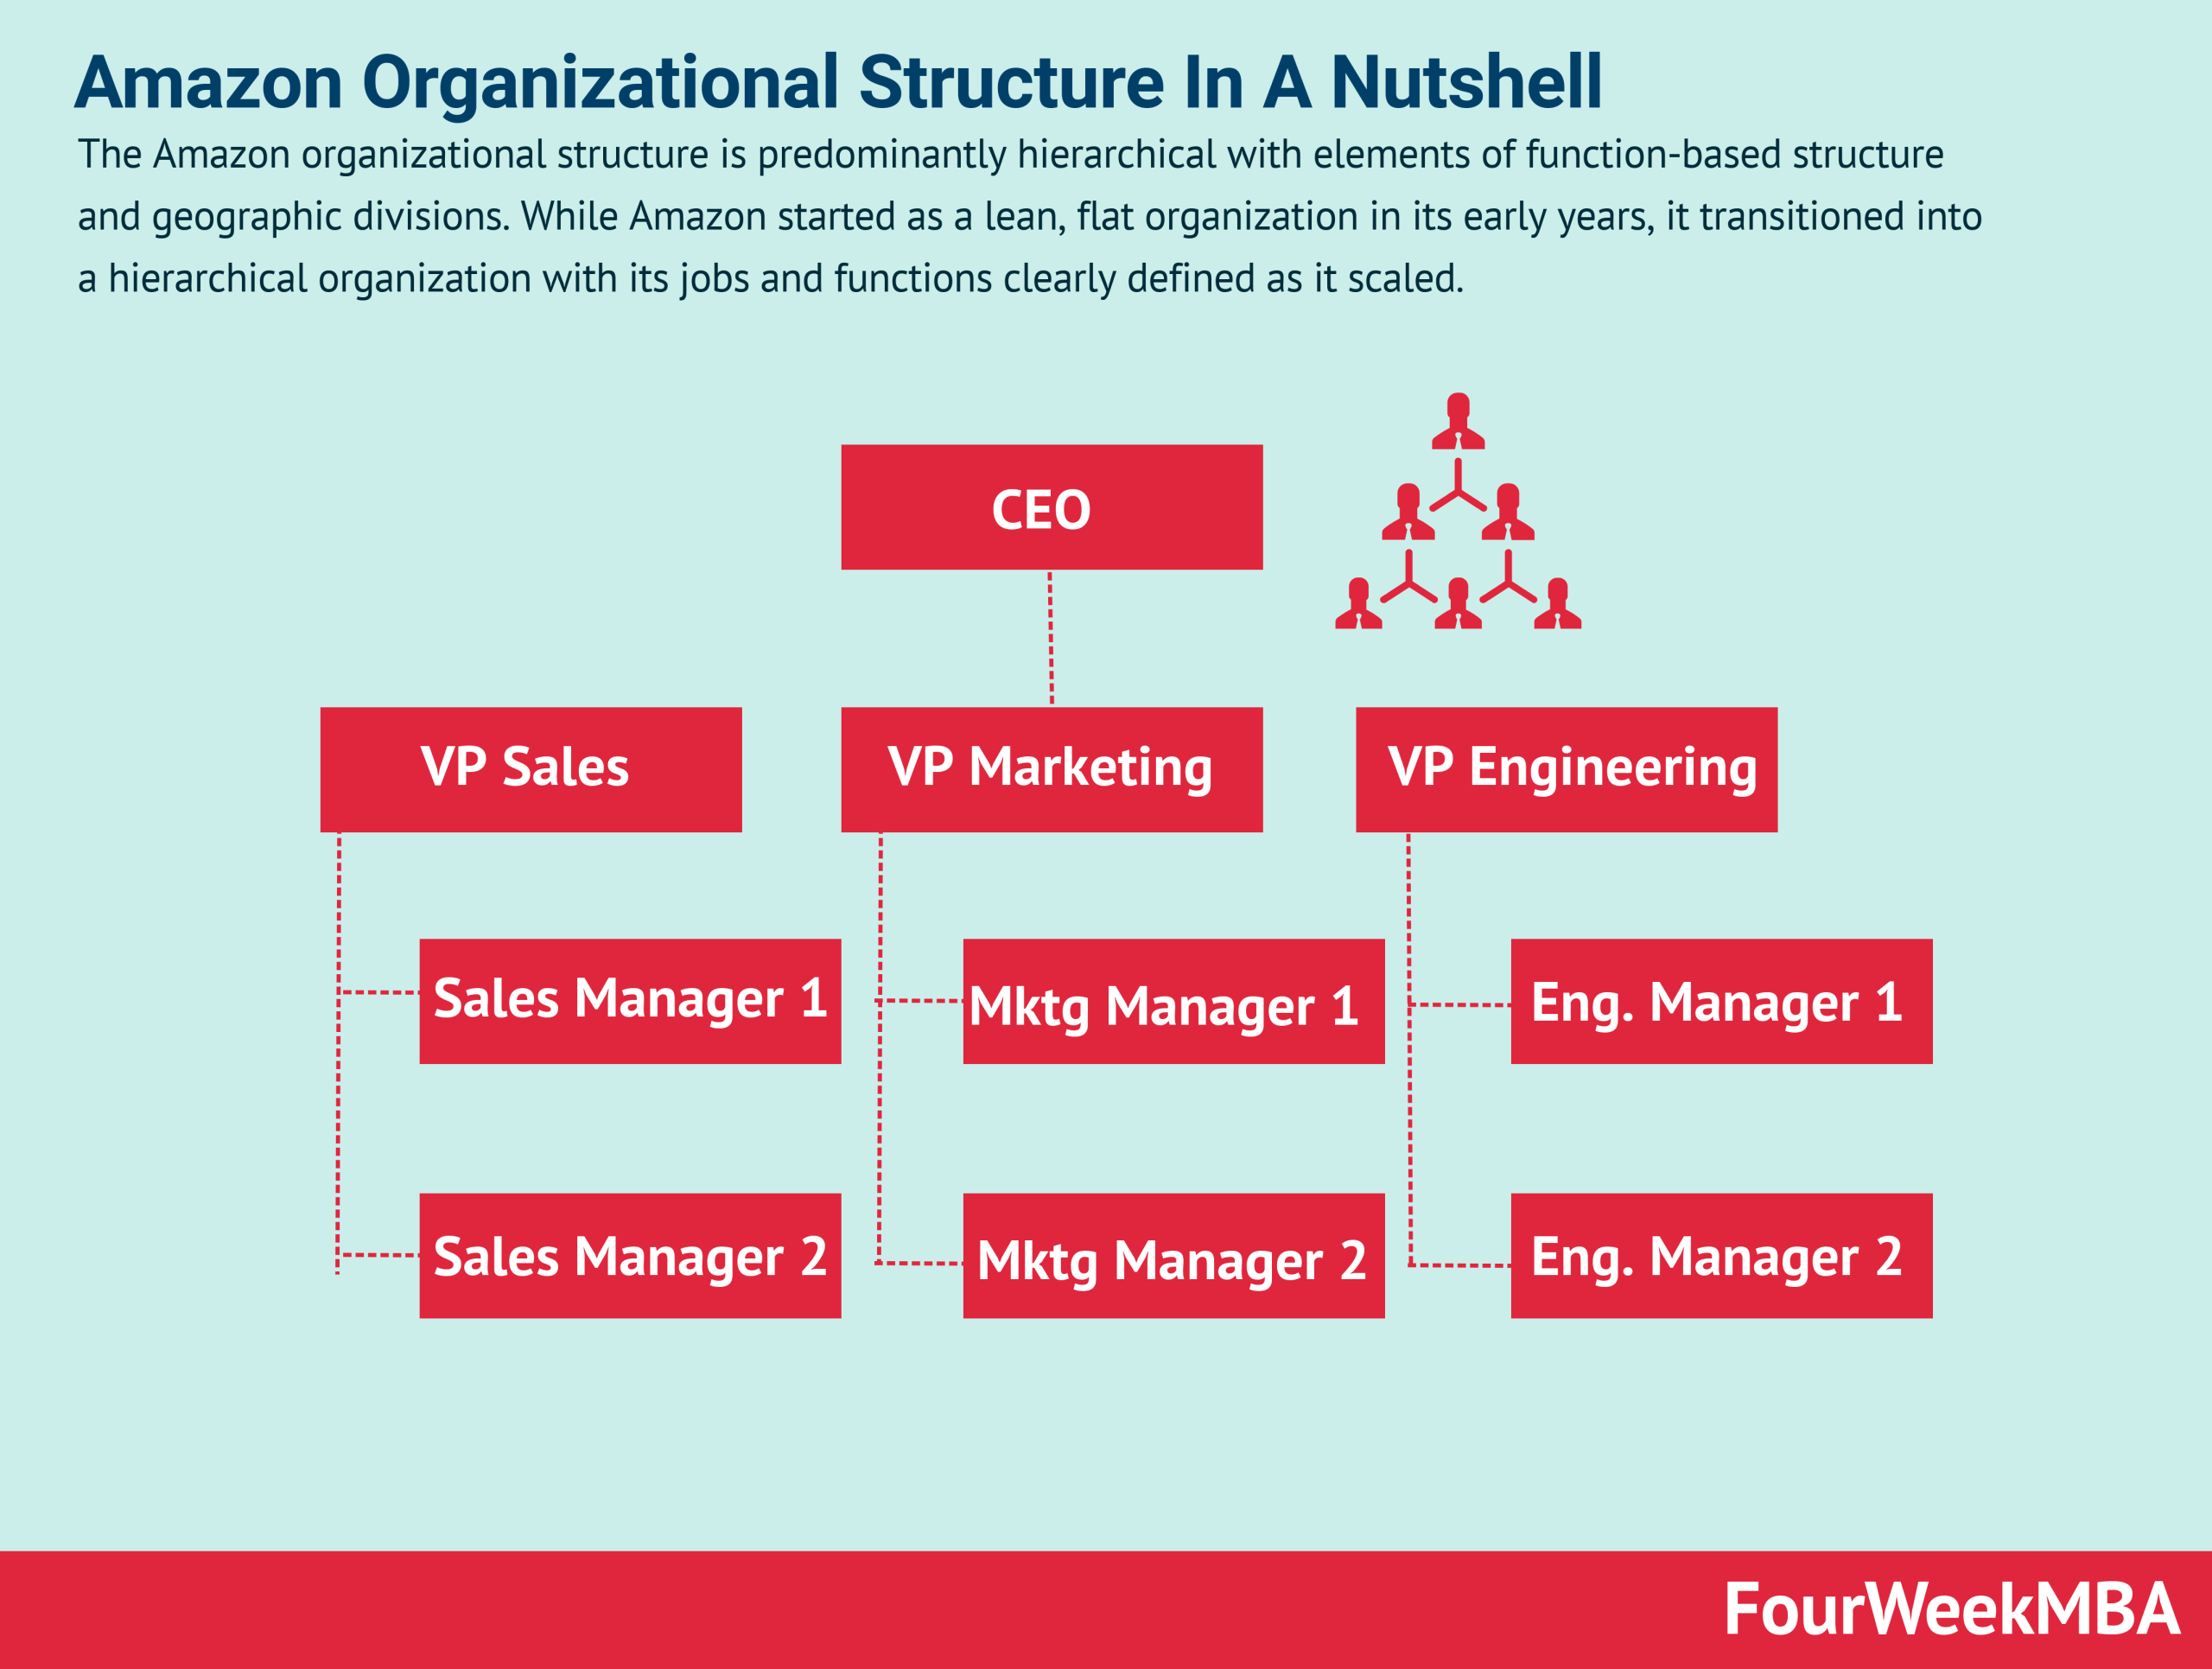 Amazon Organizational Structure In A Nutshell